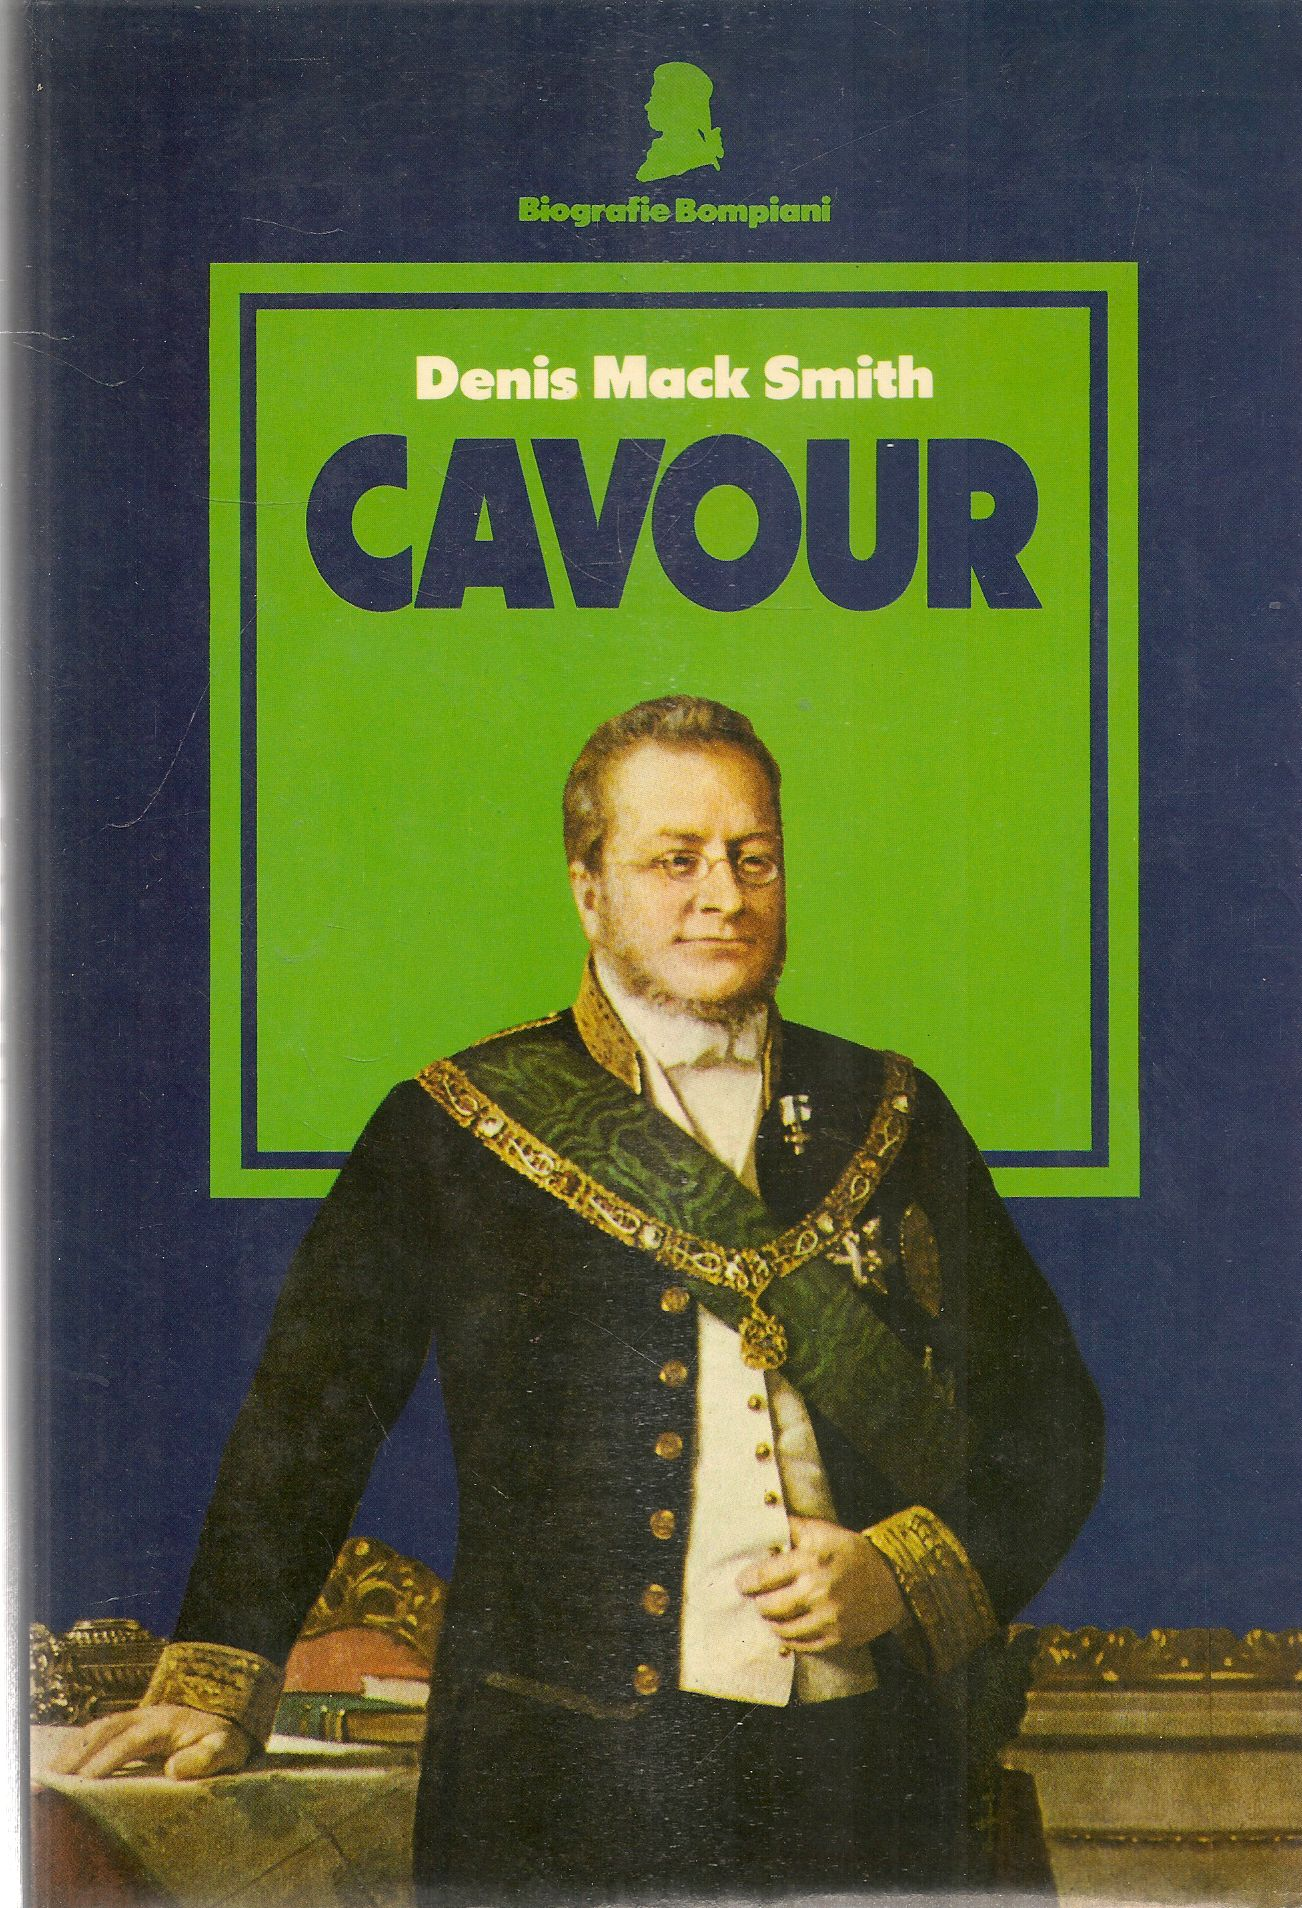 CAVOUR - DENIS MACK SMITH - bompaini 1984